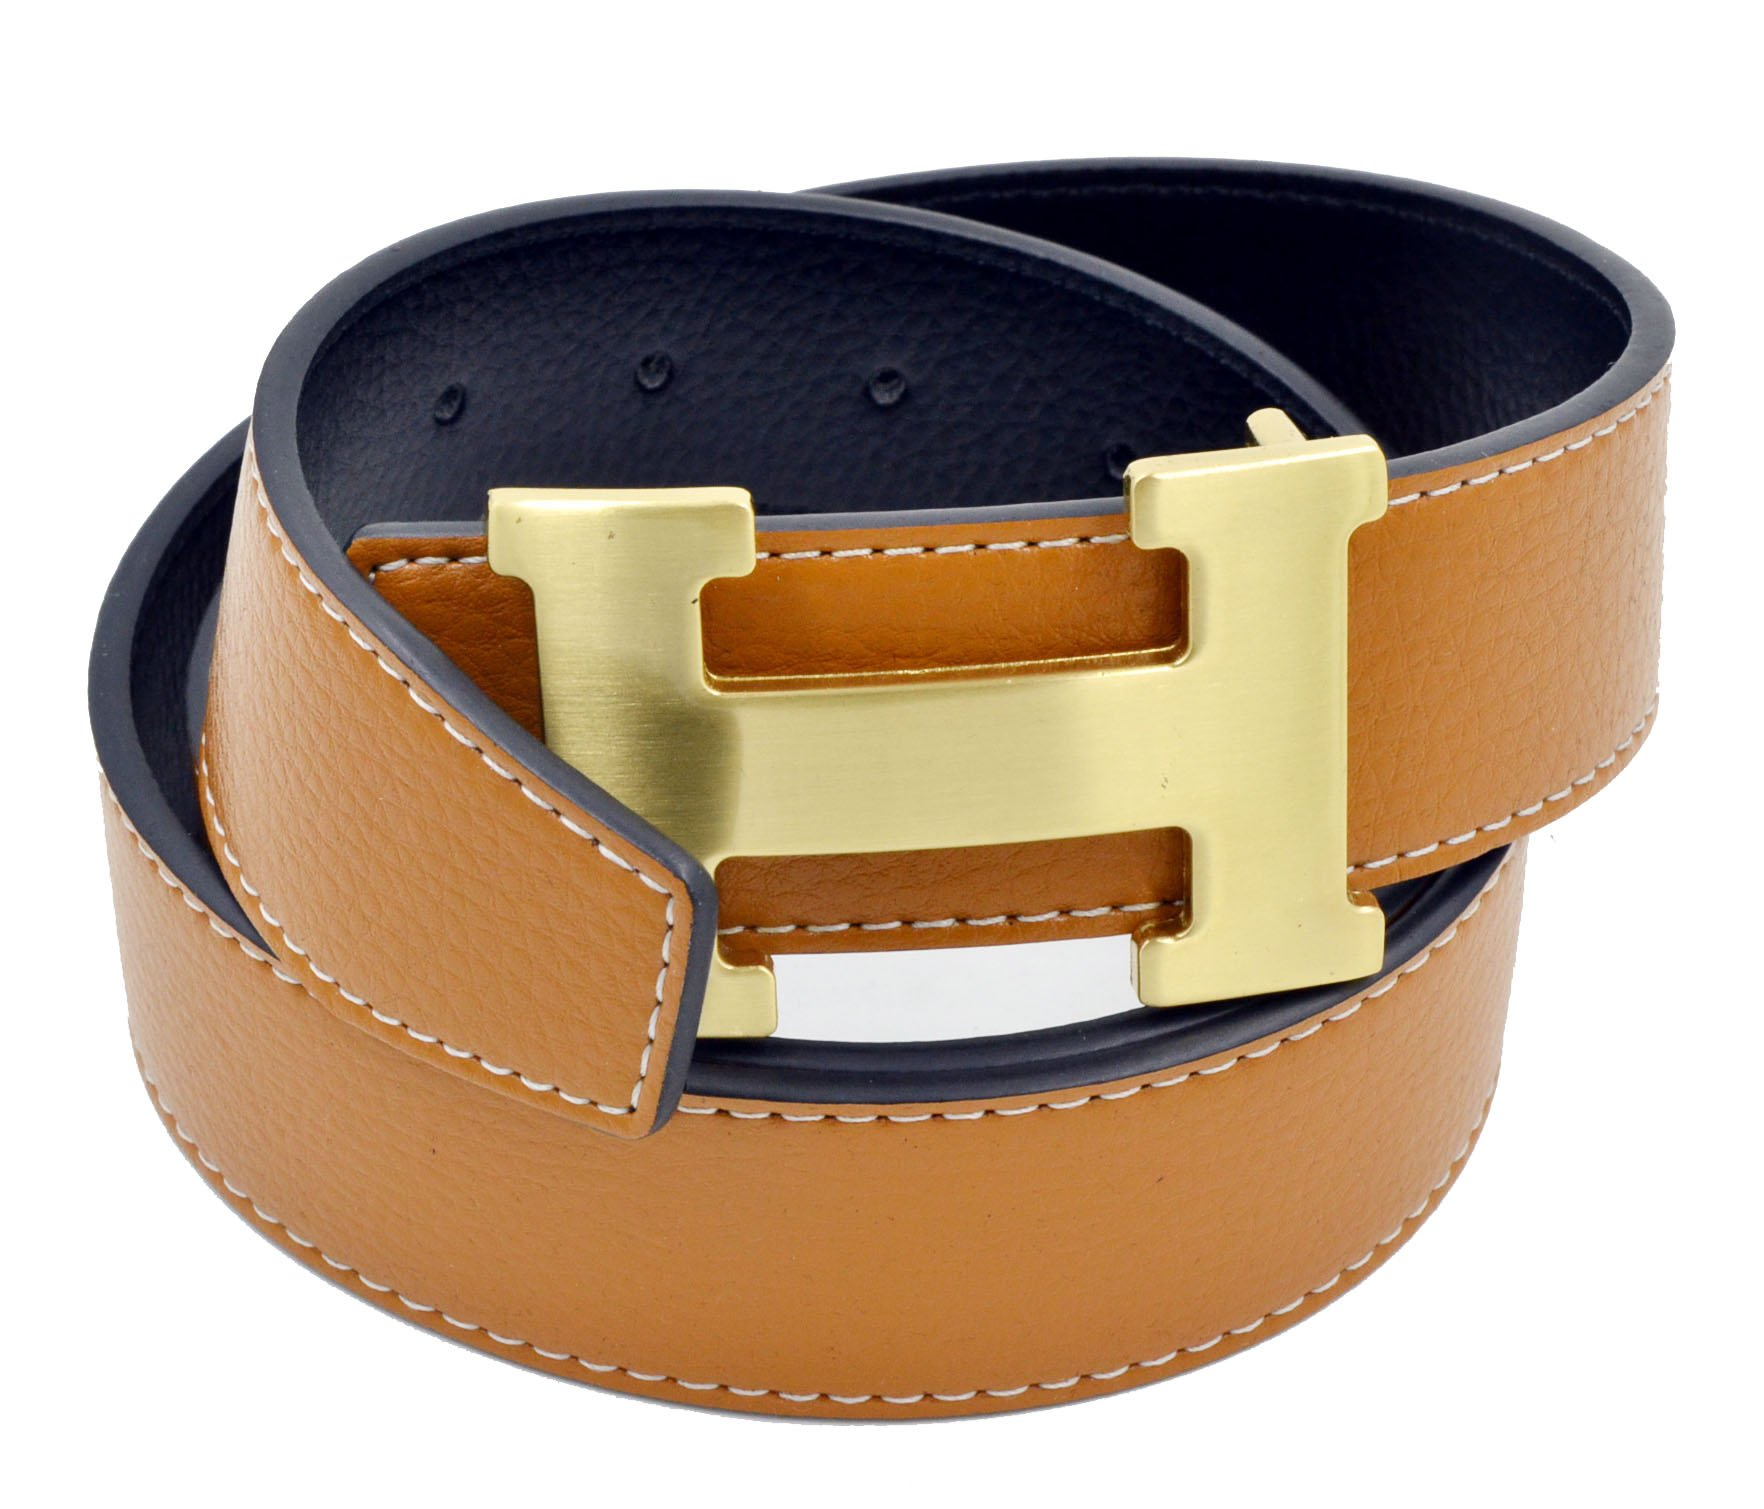 HG-products H-Style unisex Business Casual Belt [3.8CM] (Brown/Gold Buckle, 105CM [Waist < 30''])